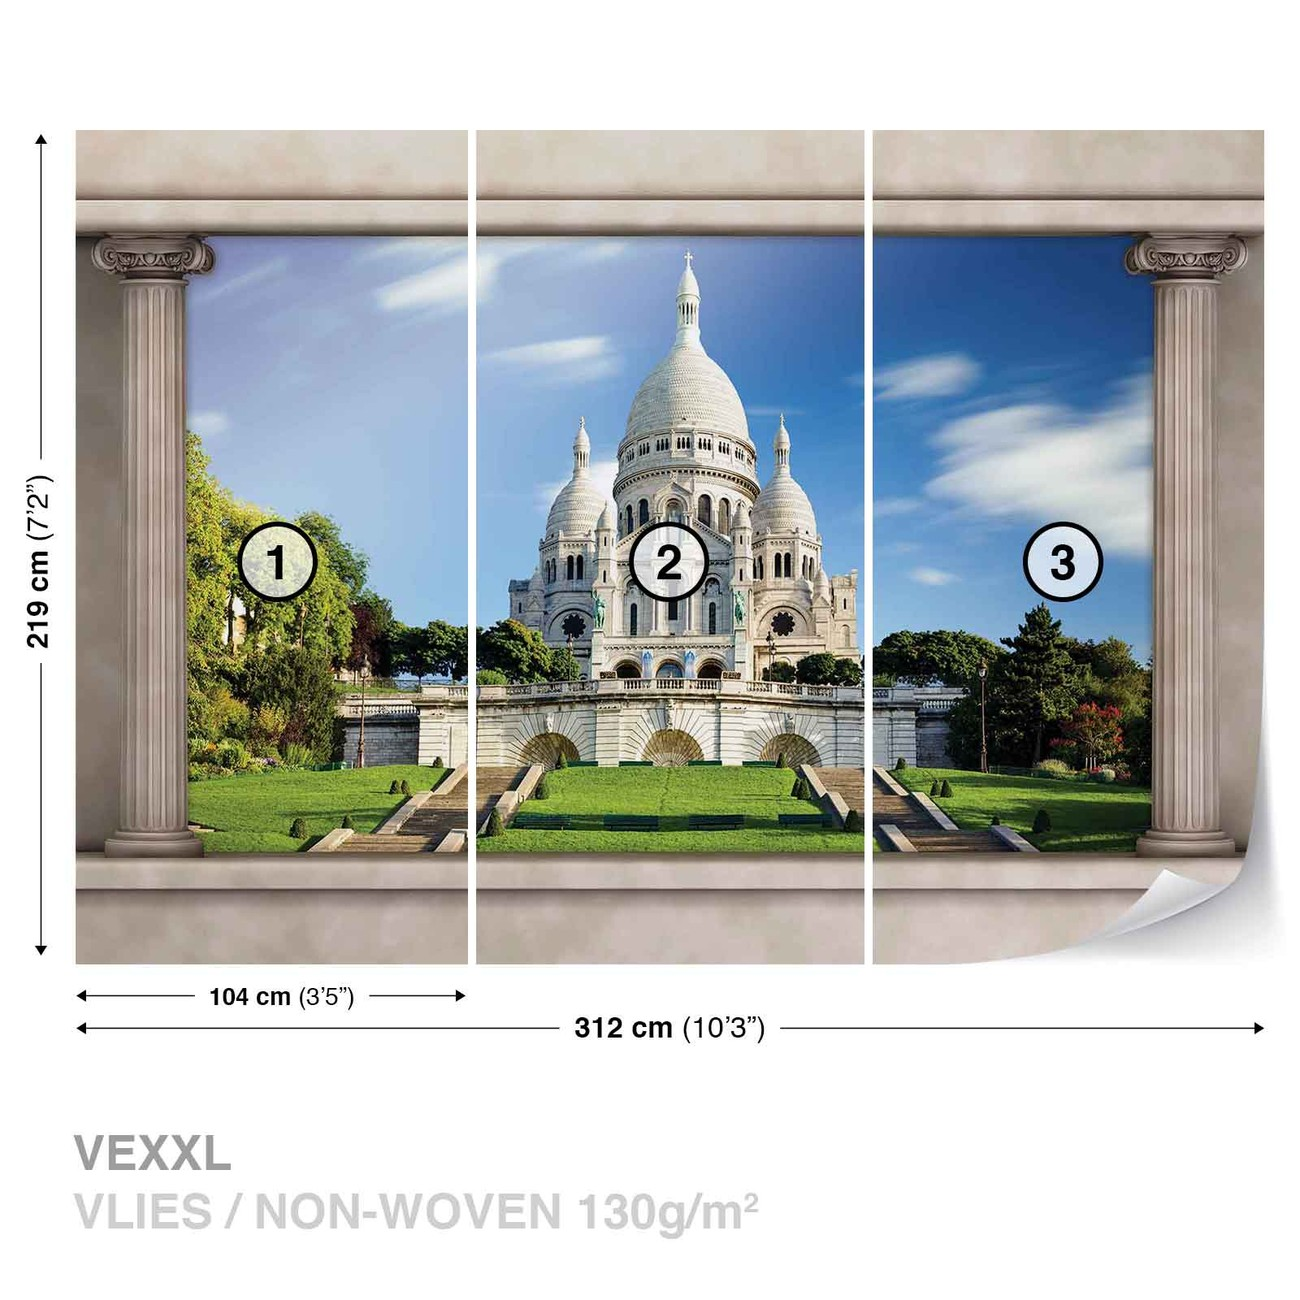 paris sacre c ur vue de fen tre poster mural papier peint acheter le sur. Black Bedroom Furniture Sets. Home Design Ideas